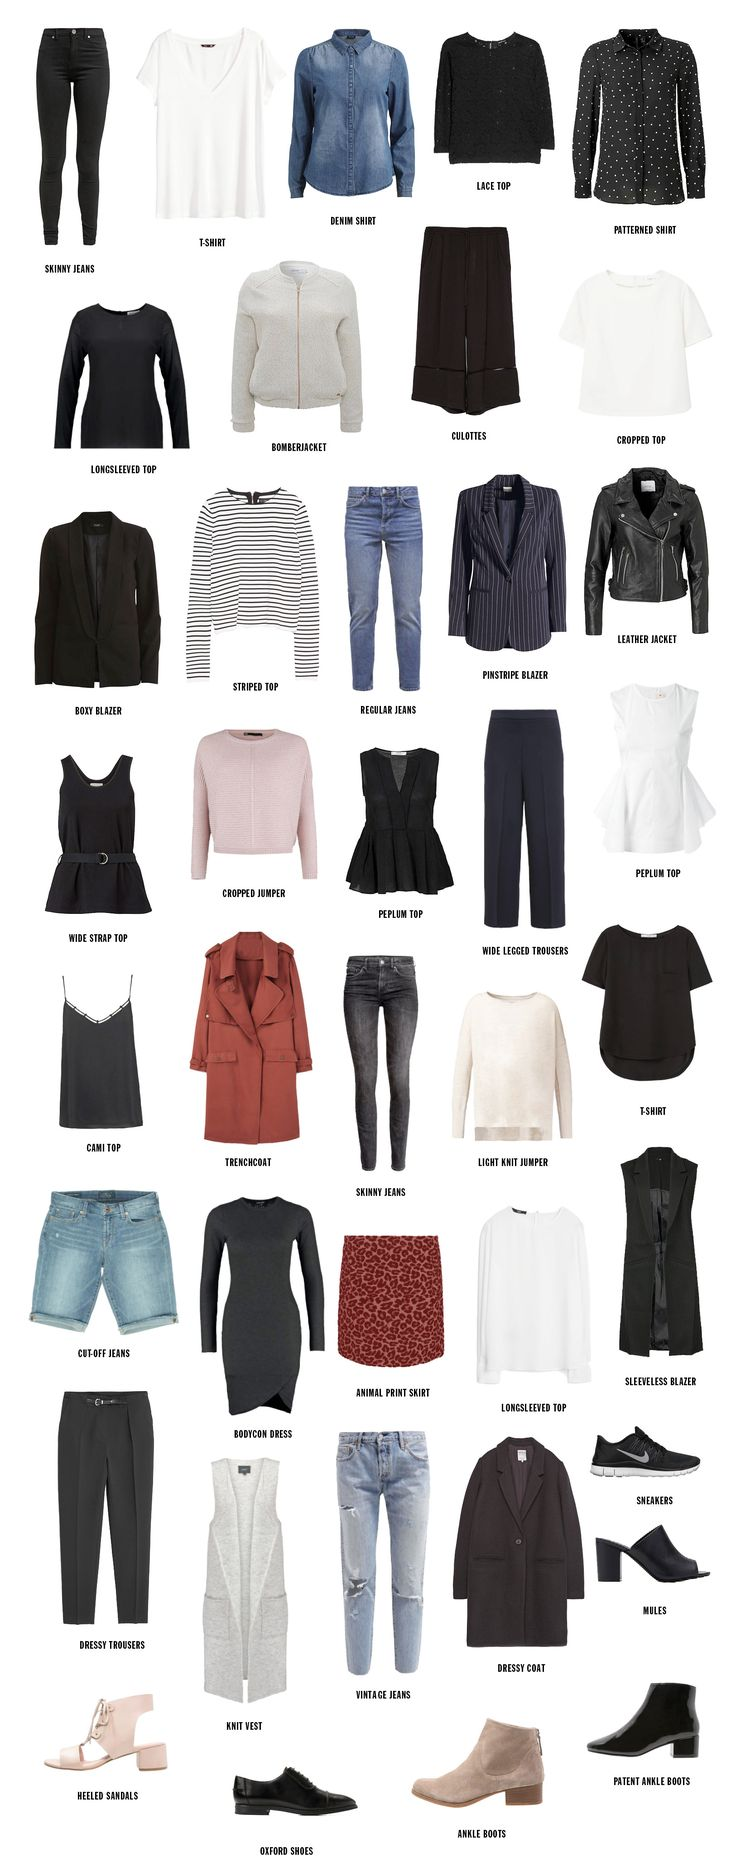 37 Best Images About Fashion / Capsule Wardrobe On